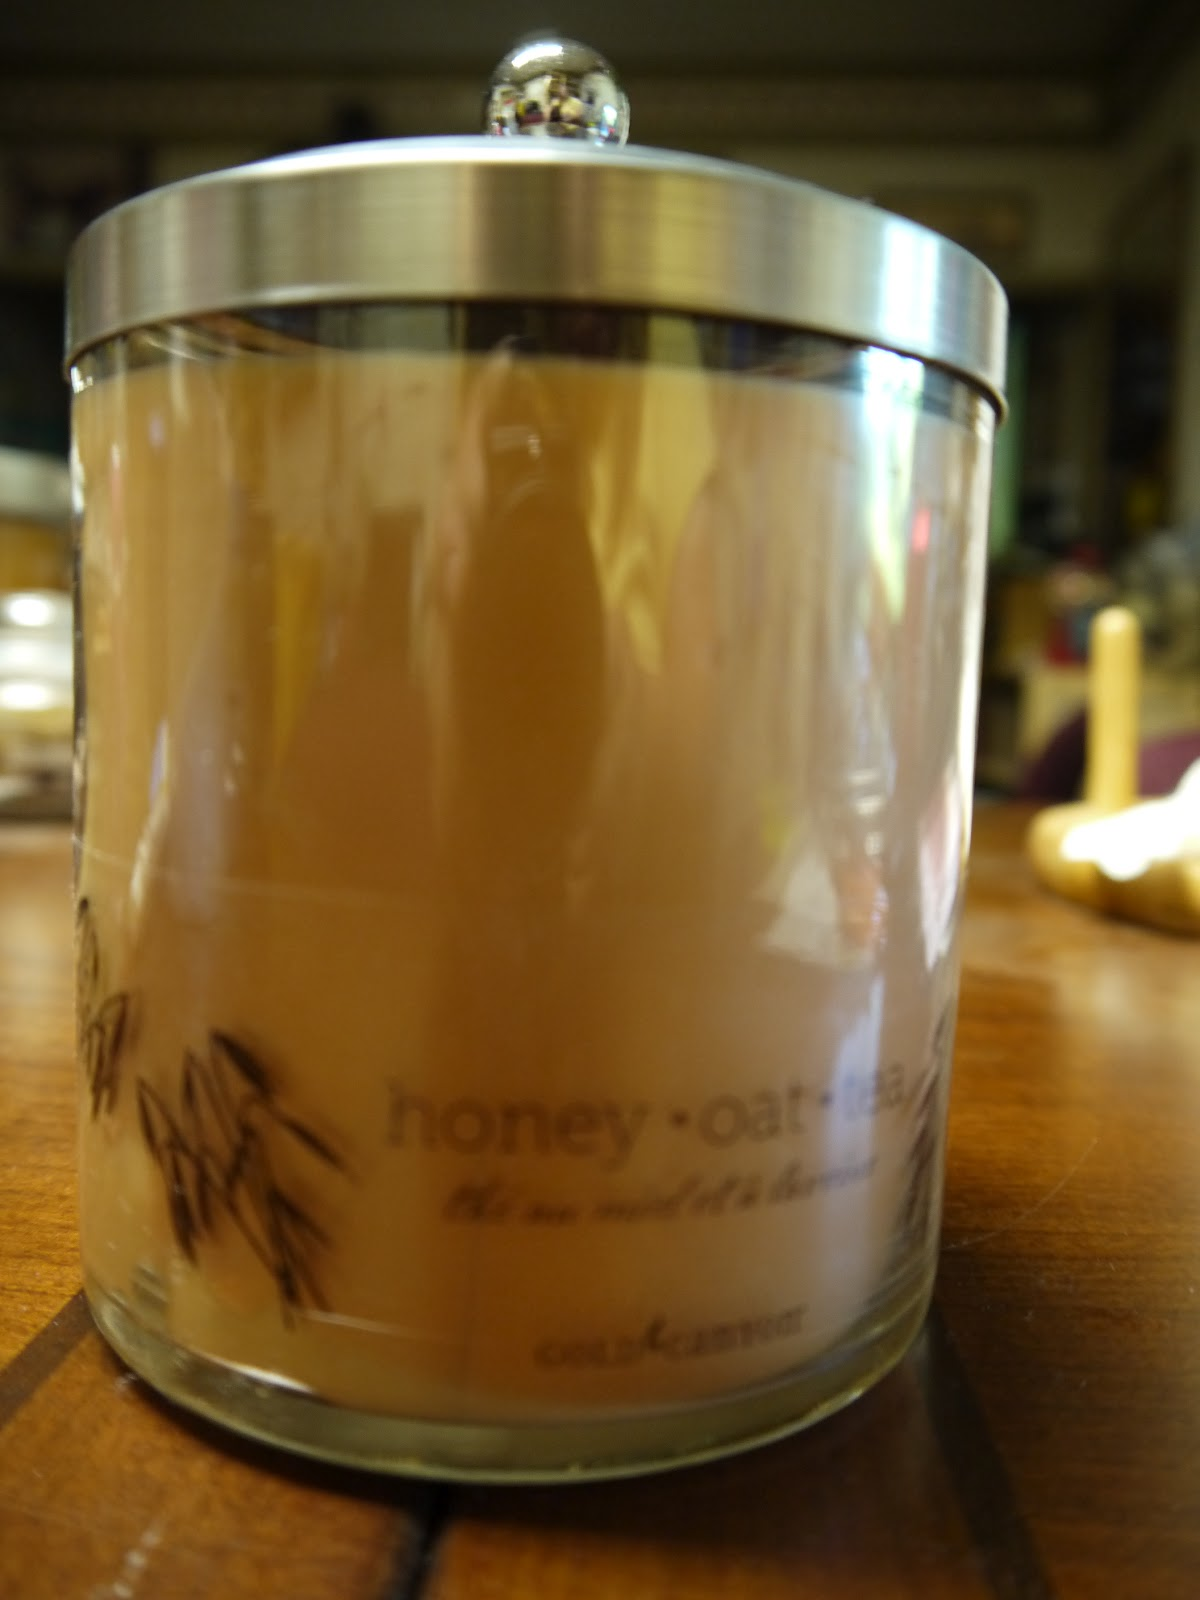 Most Fragrant Candles At The Fence Gold Canyon Candles Love 39em